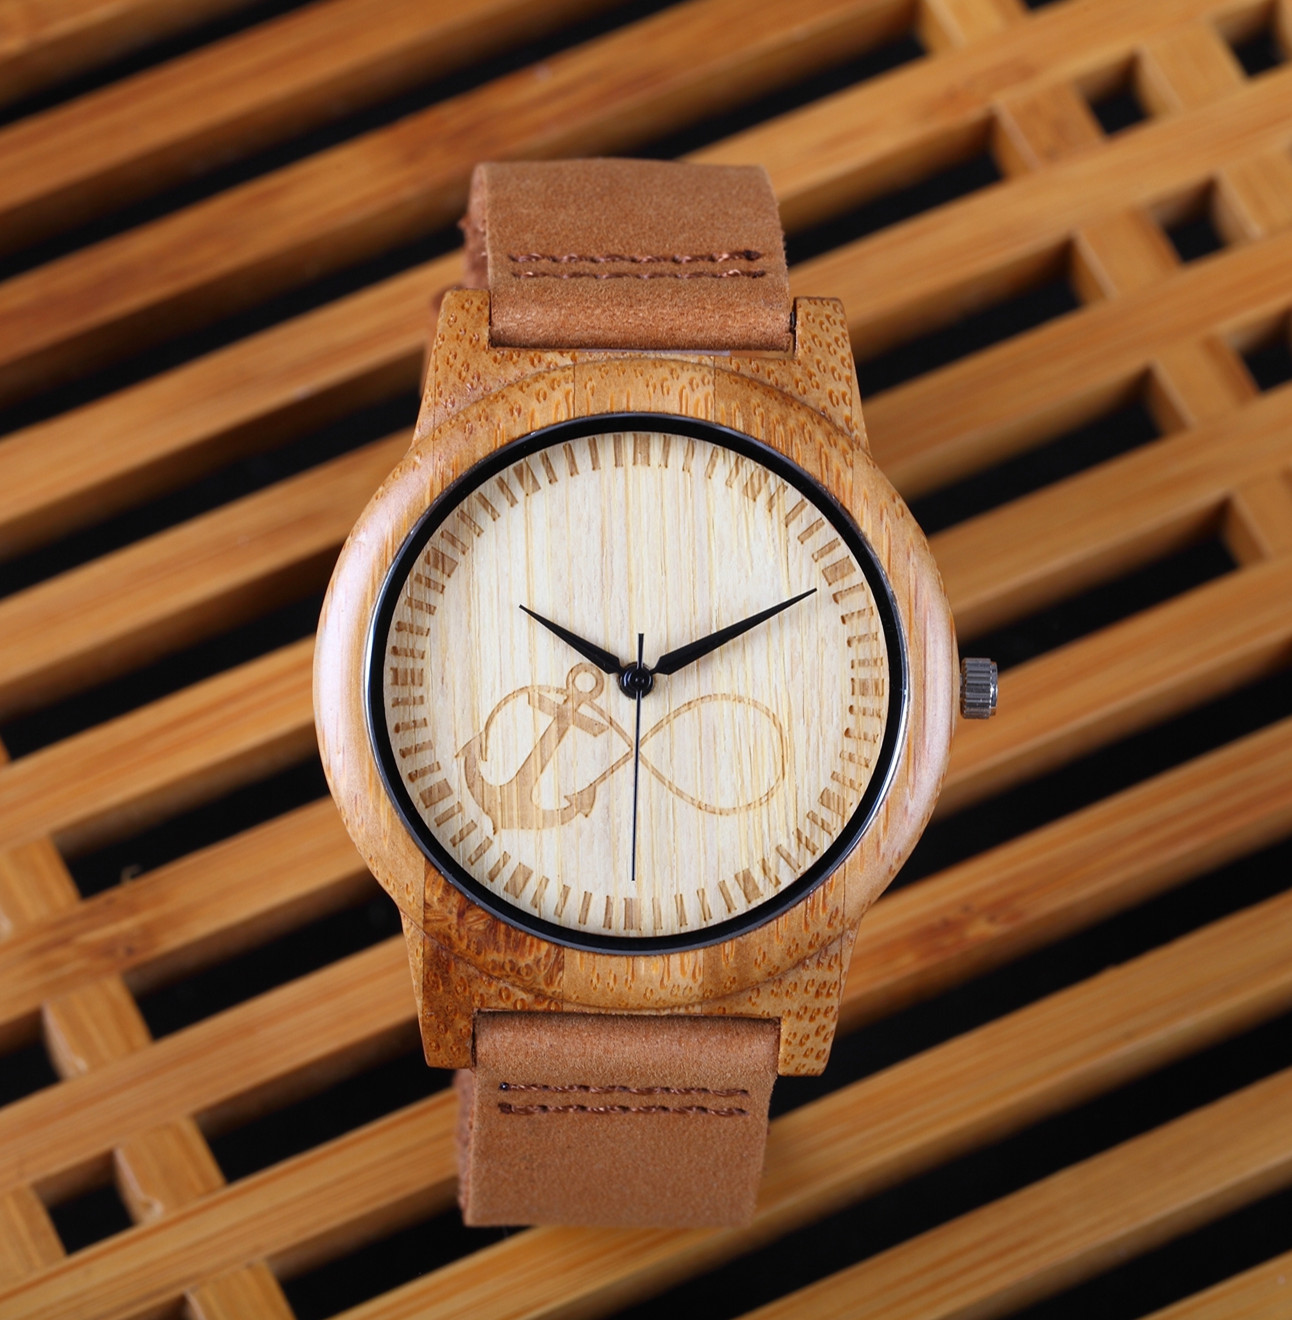 New Top Brand Anchors Design Bamboo Wood Watches Japan Quartz Wood Bamboo Wristwatches Genuine Leather Men Women Luxulry Watches bobo bird brand new sun glasses men square wood oversized zebra wood sunglasses women with wooden box oculos 2017